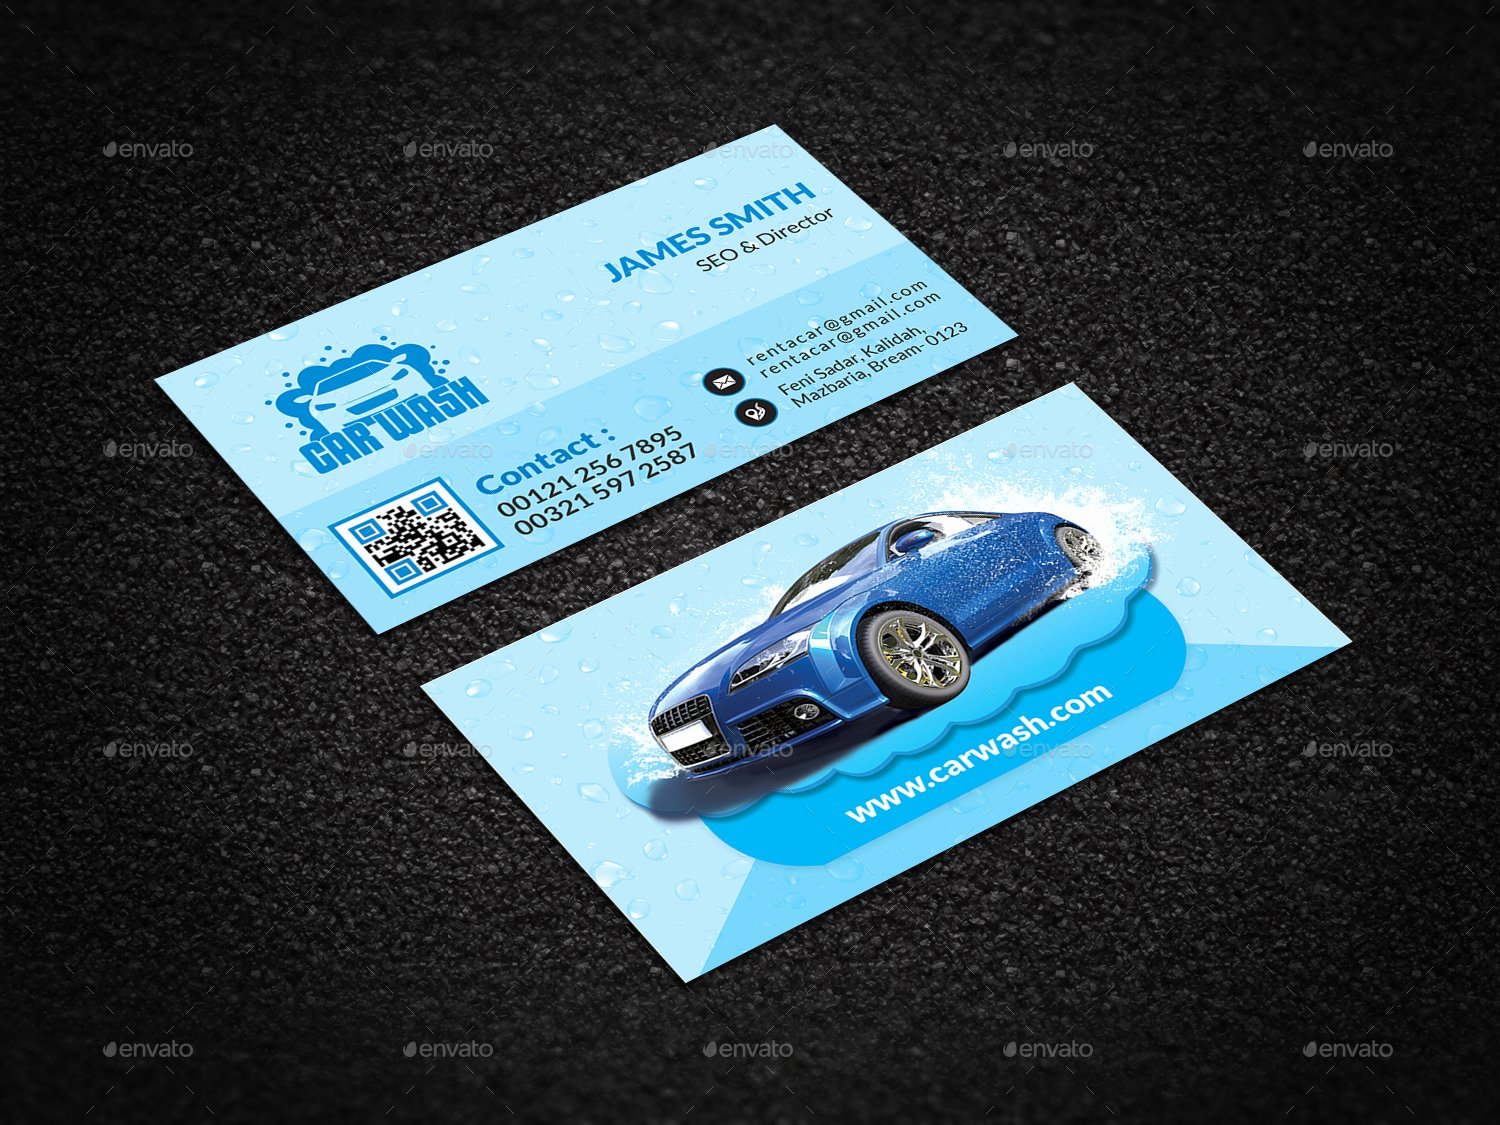 Car Wash Business Cards Lovely Car Wash Business Card by Creative touch